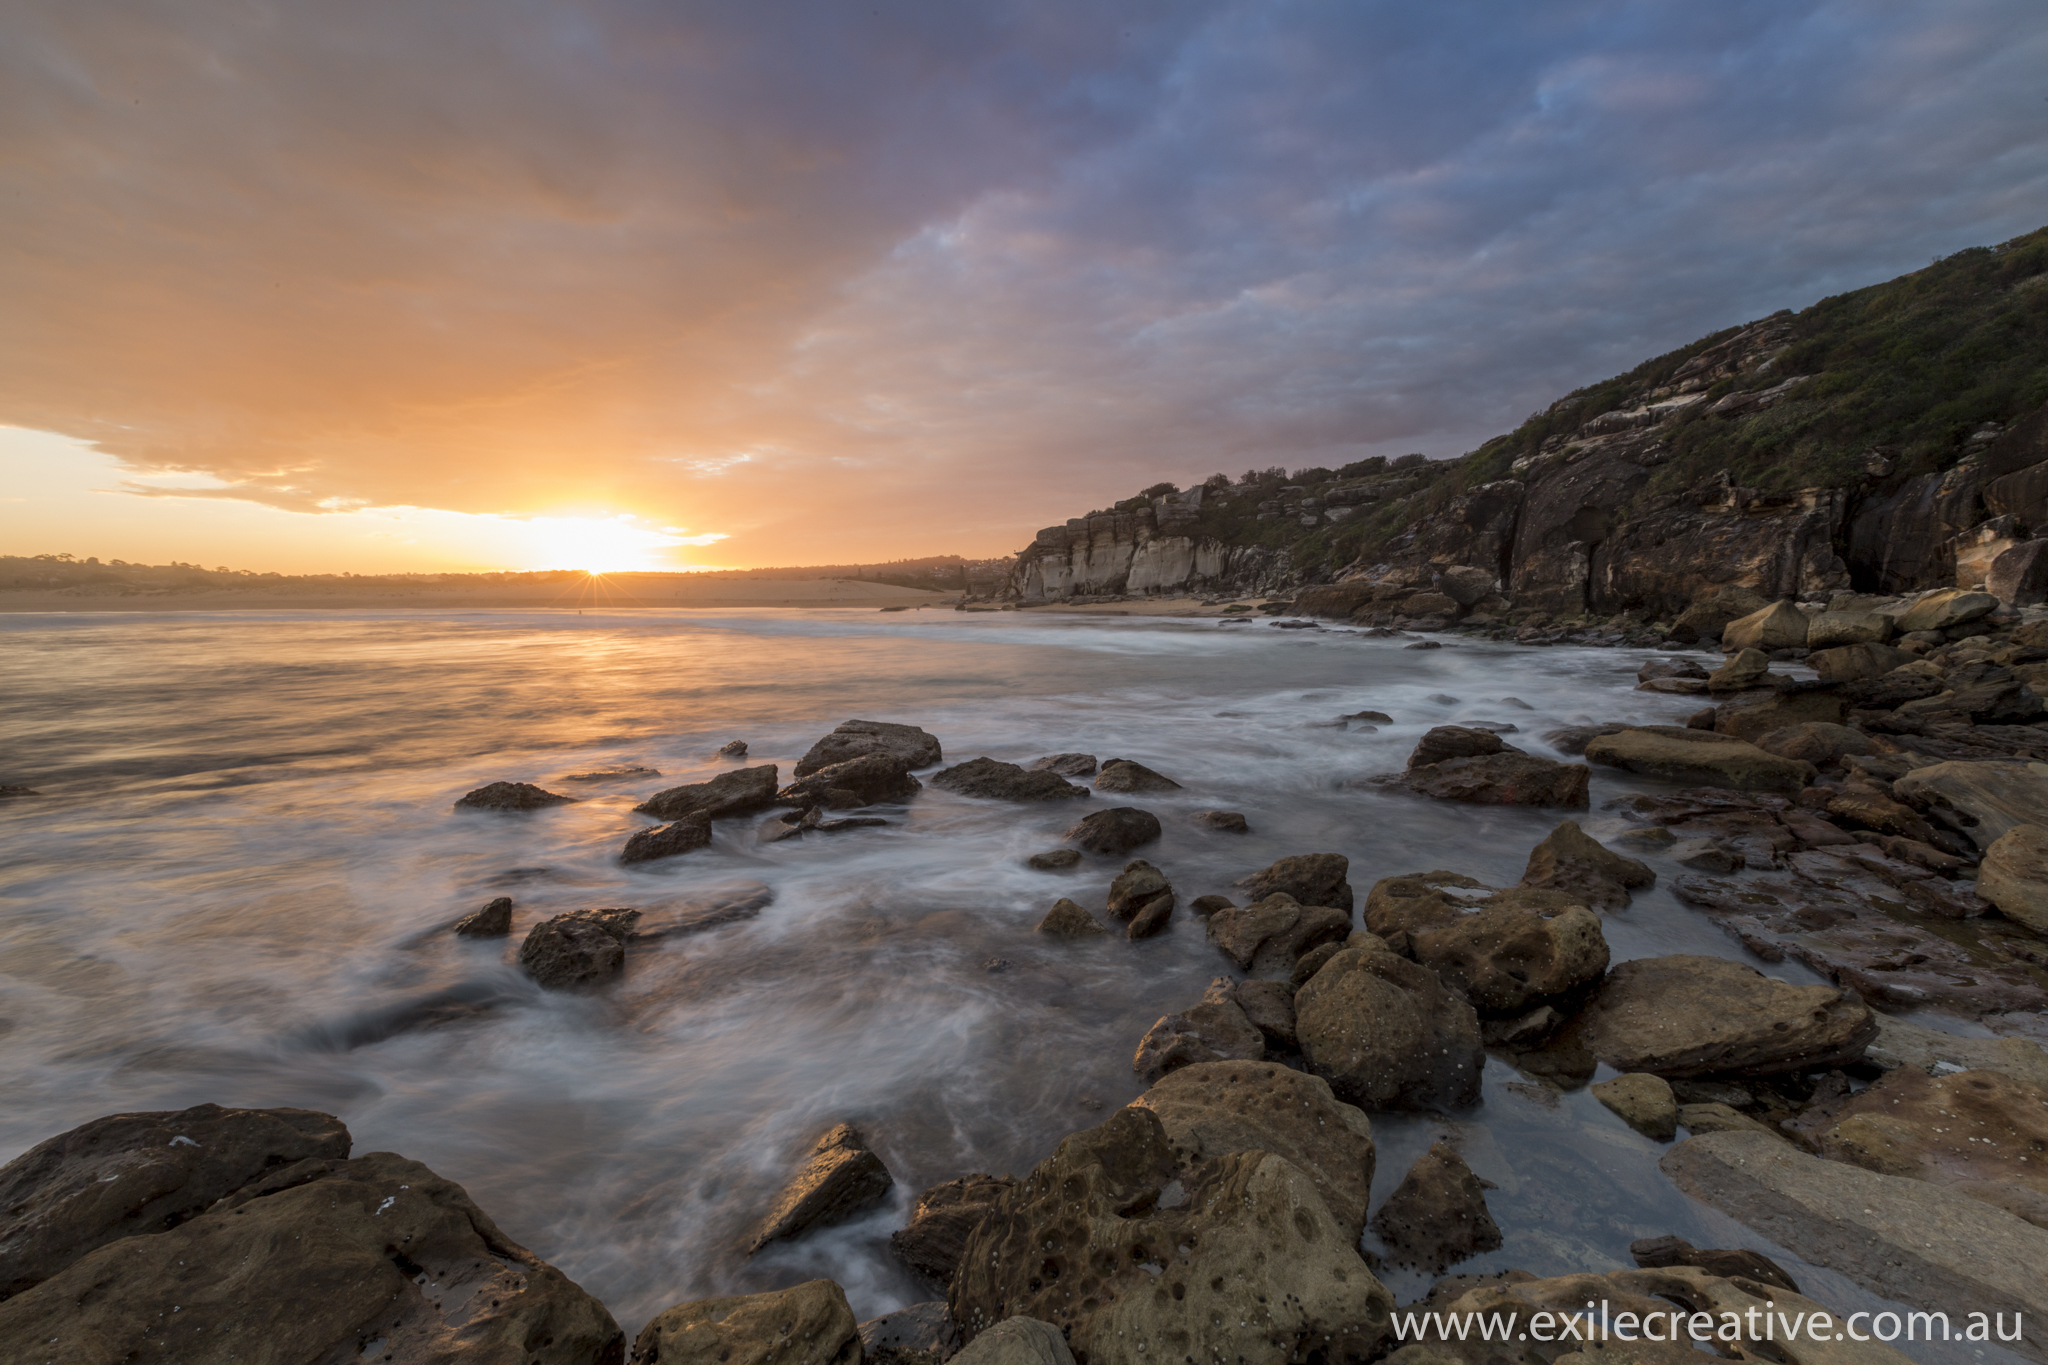 Sunset at North Curl Curl